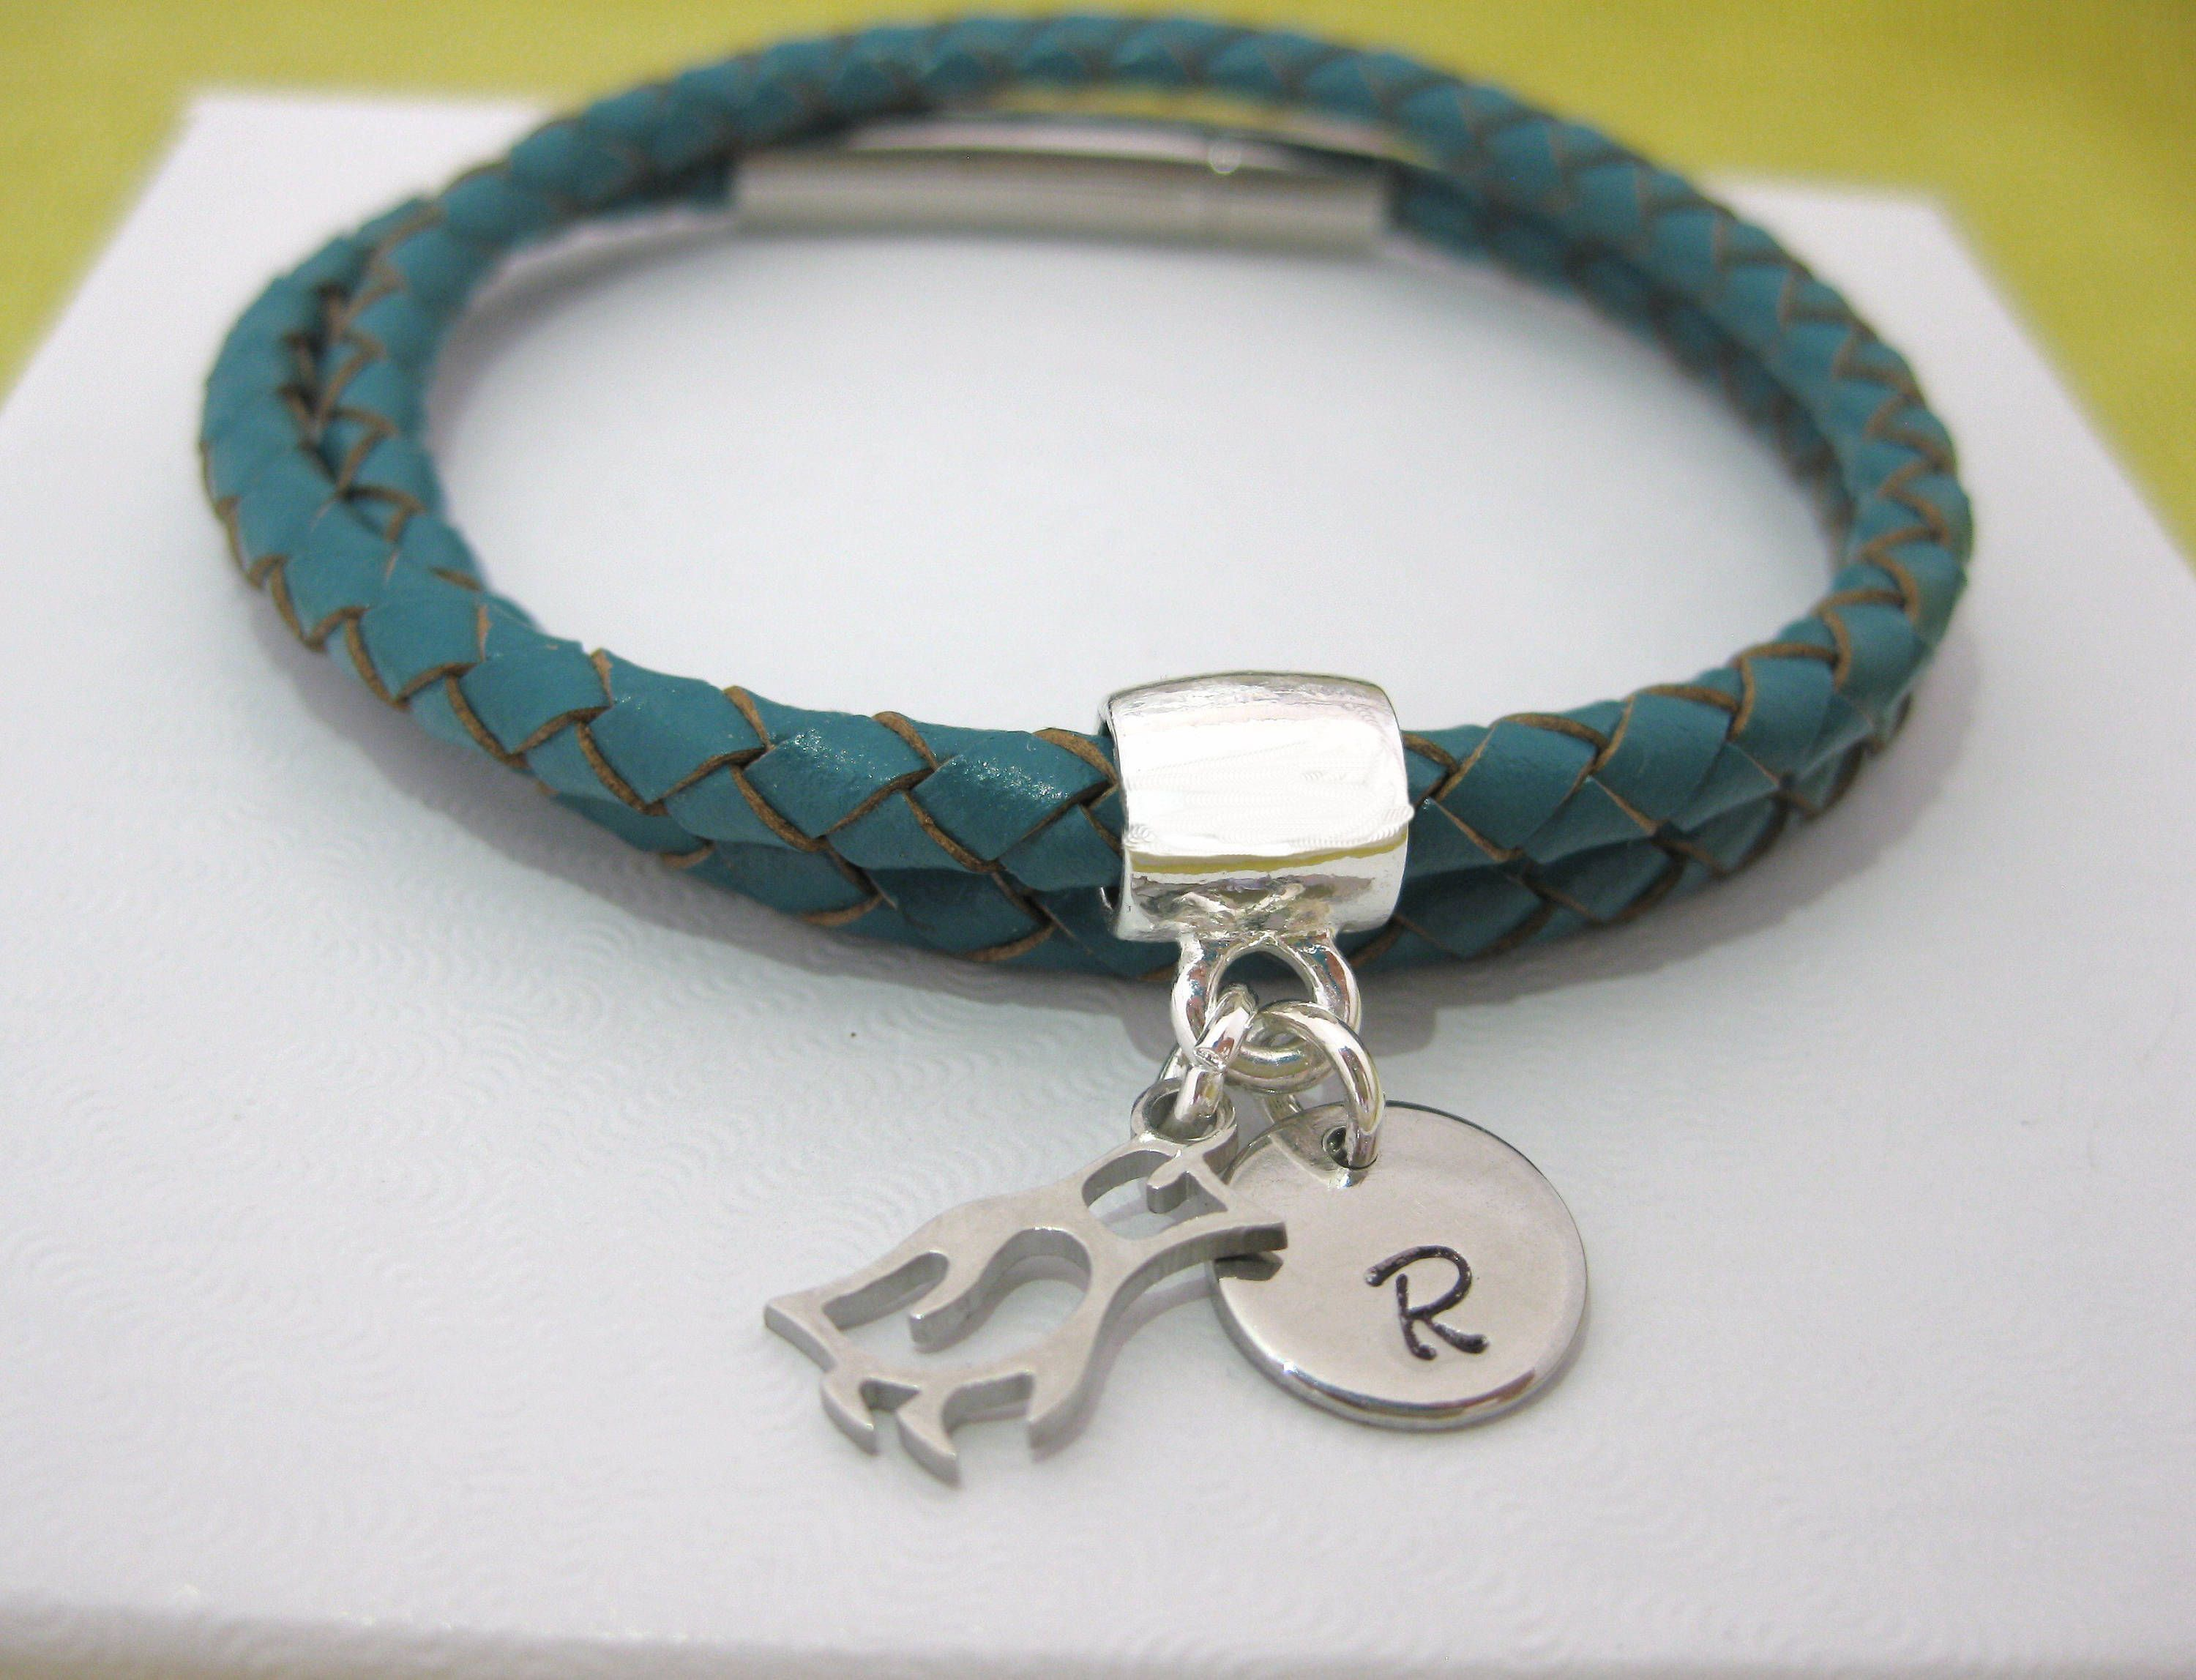 Personalised 4mm Braided Leather Teal Double Wrap Bracelet Initial Charm Magnetic Clasp Uk Er By